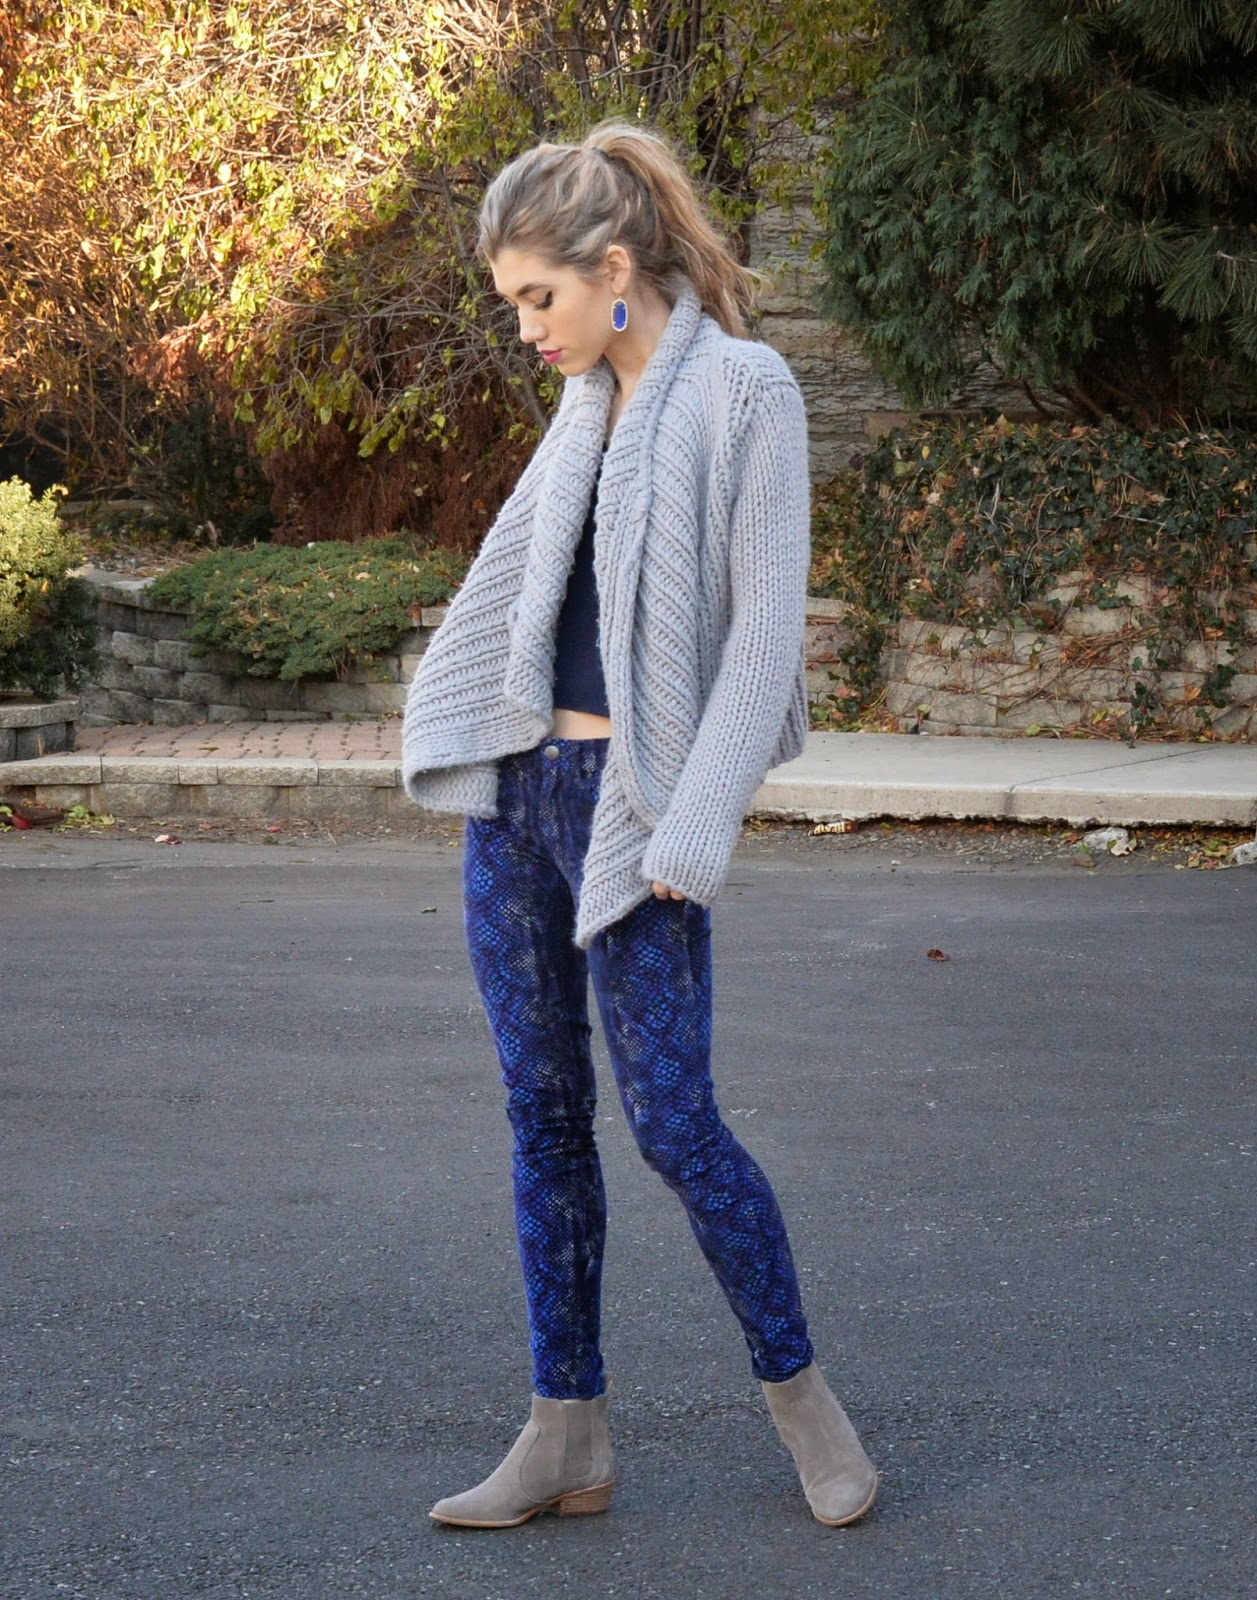 fall style, sweater, cords, grey and blue, fashion